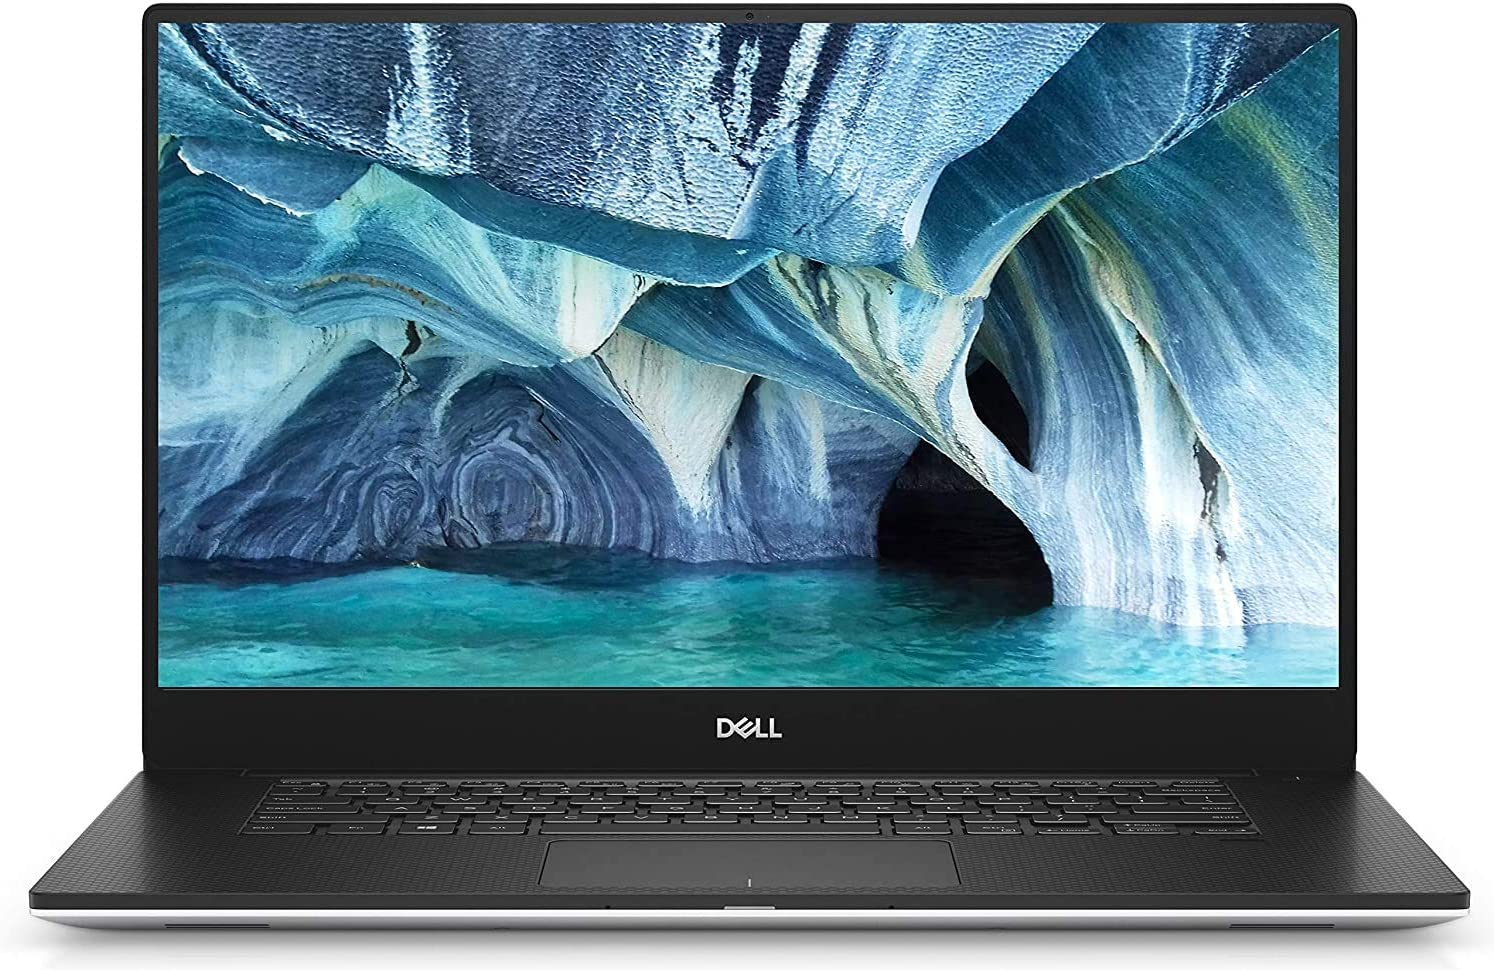 Dell XPS 15 7590 15.6 Inch 4K UHD Non-Touch 512GB SSD 2.6GHz i7 16GB RAM (6-Core i7-9750H, NVIDIA GTX 1650, Windows 10 Home) Silver XPS7590-7992SLV-PUS